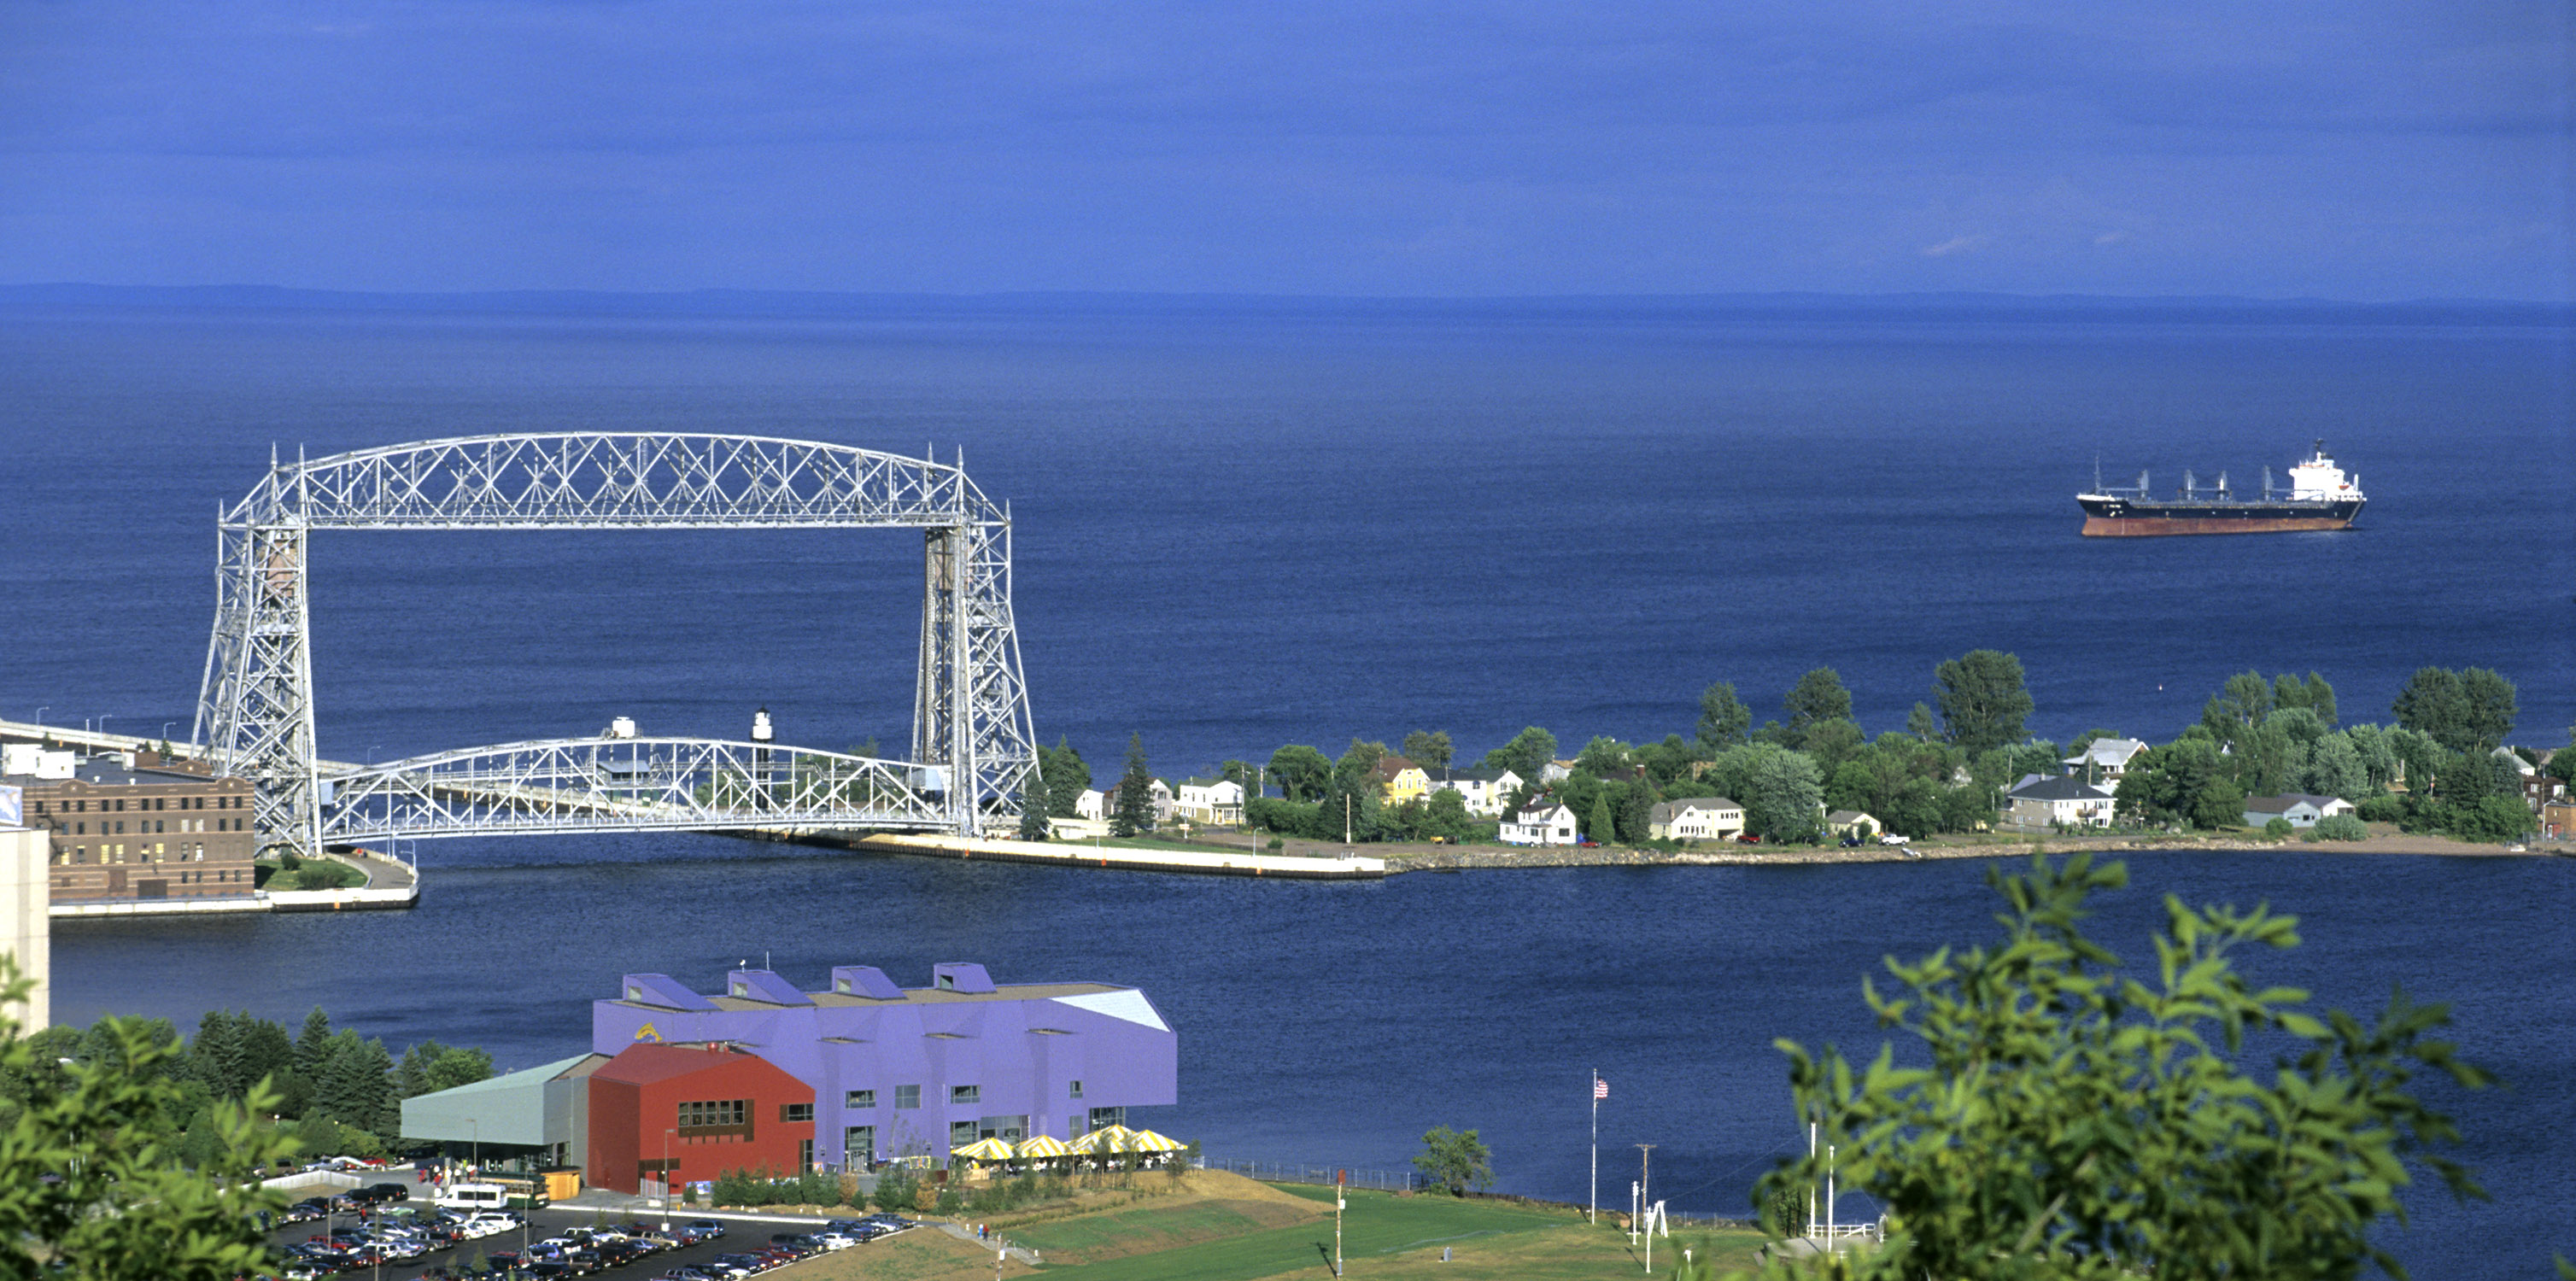 A great lake freights steams toward the Aerial Lift Bridge in Duluth